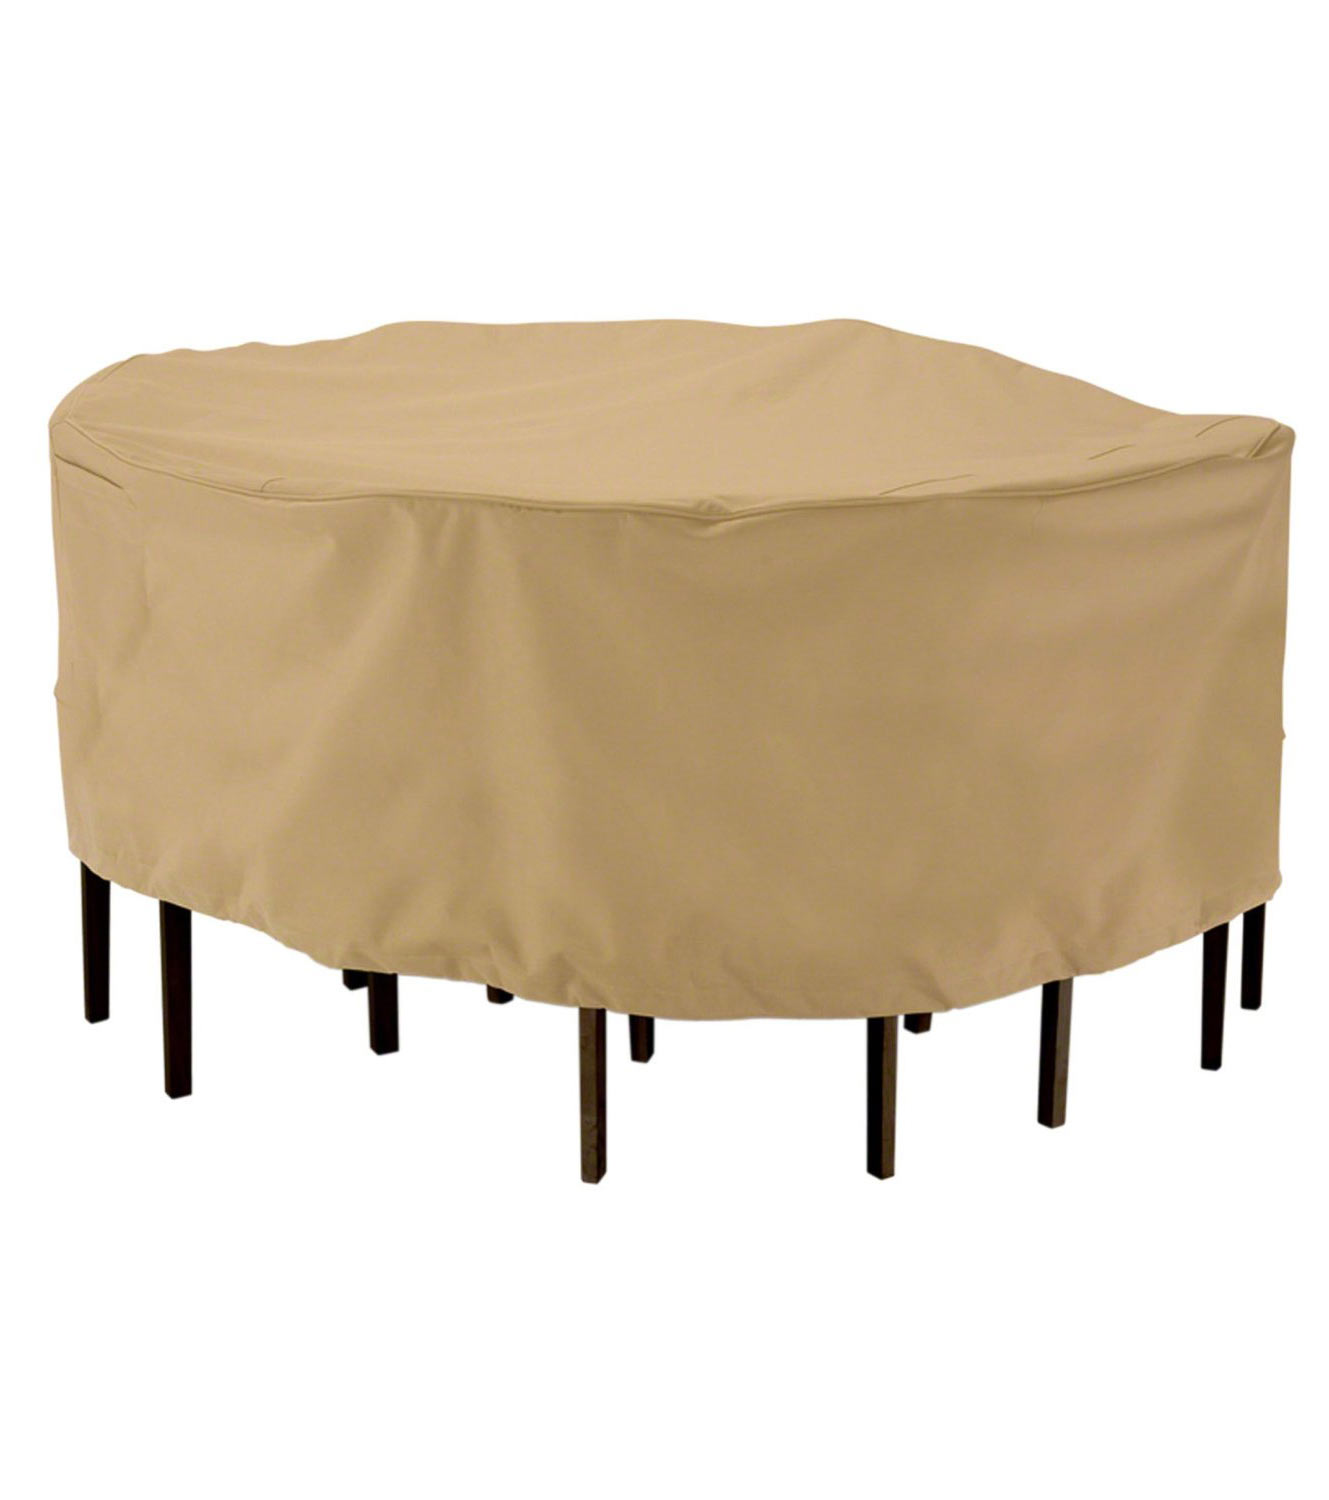 patio furniture cover round table in patio furniture covers. Black Bedroom Furniture Sets. Home Design Ideas